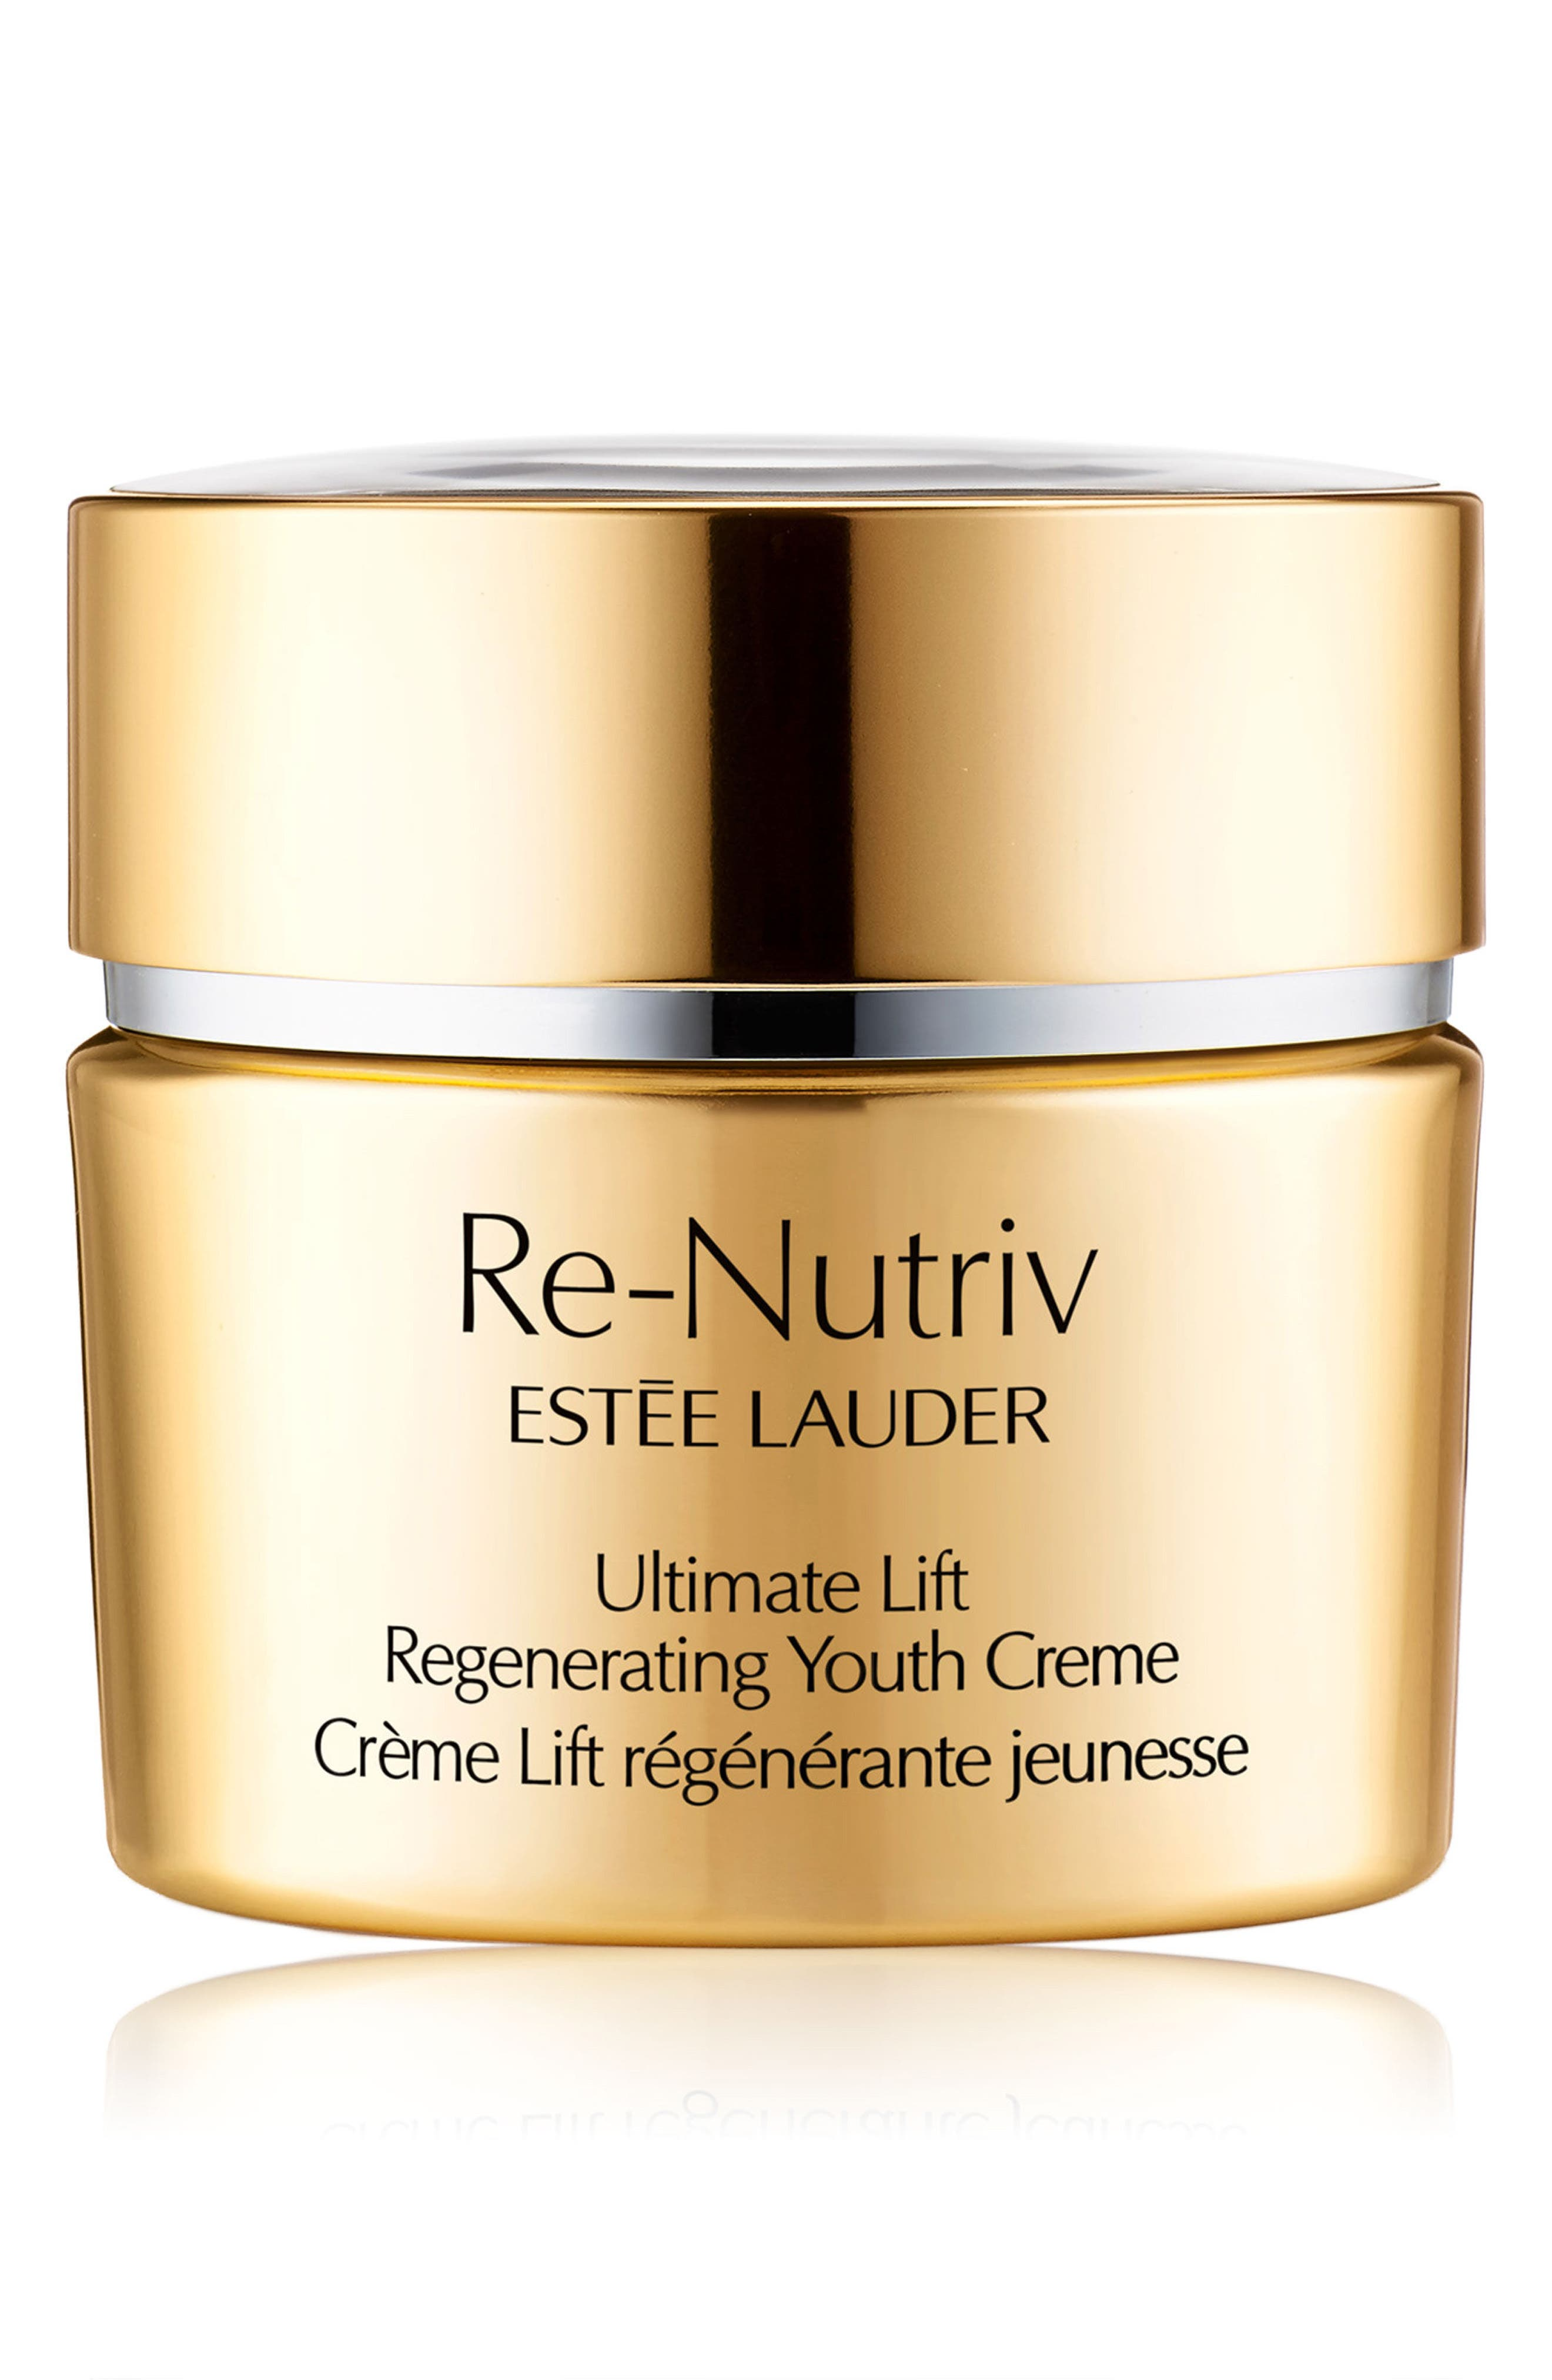 Re-Nutriv Ultimate Lift Regenerating Youth Creme,                             Main thumbnail 1, color,                             NO COLOR